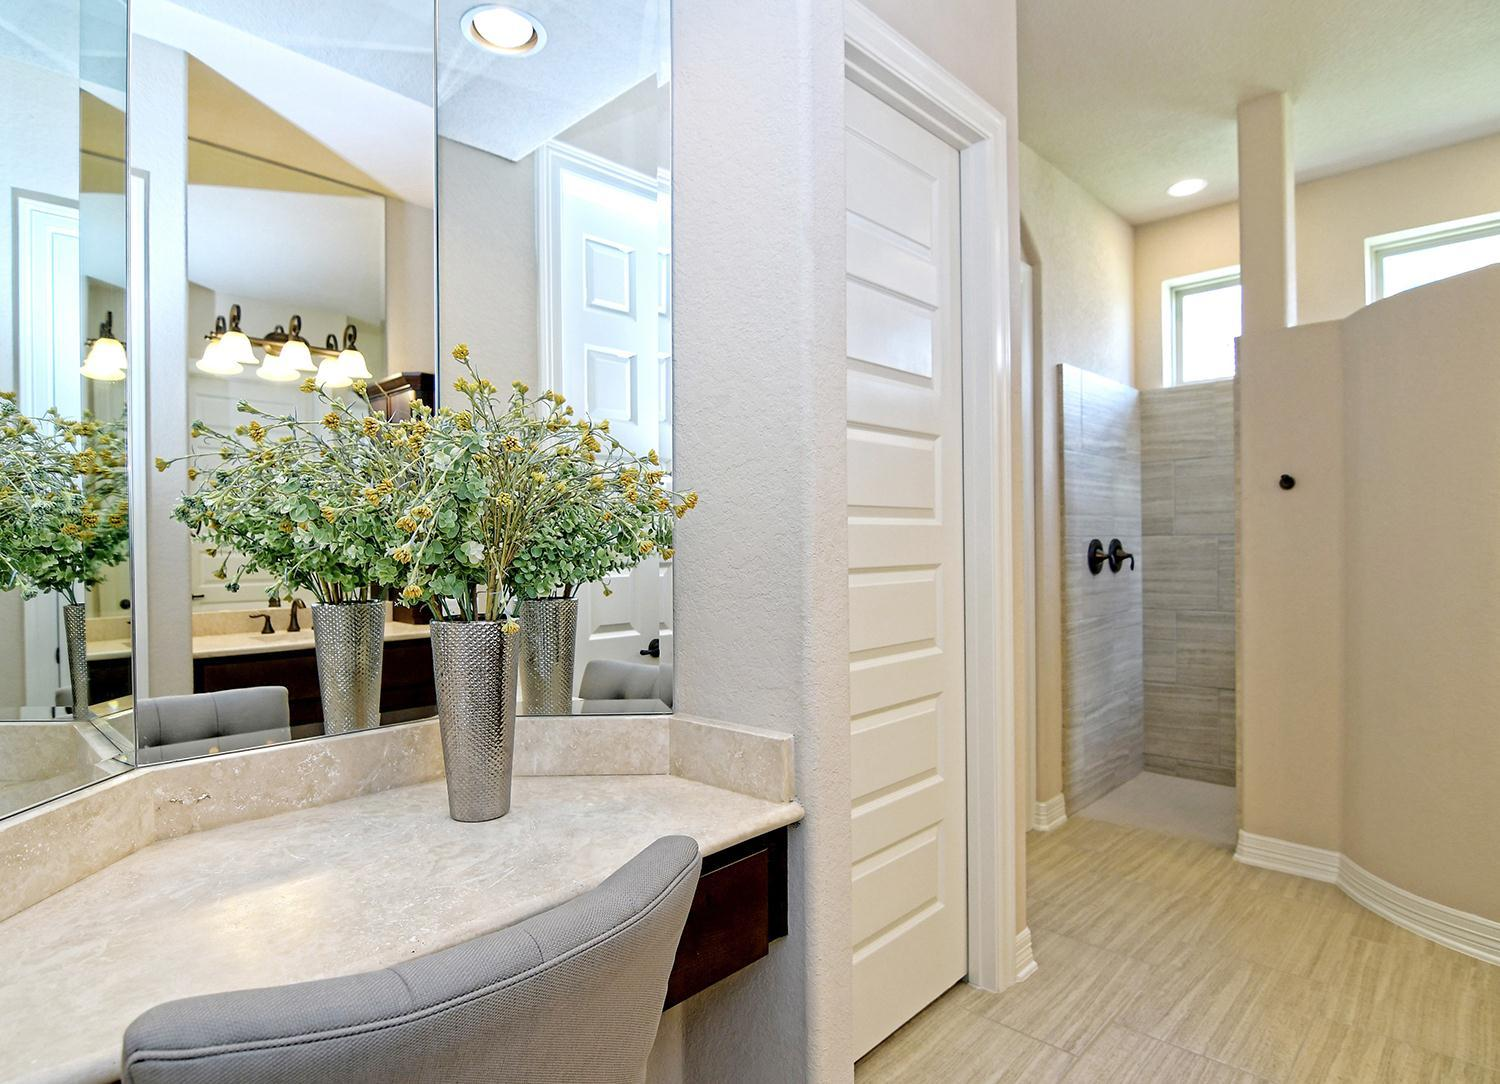 Bathroom featured in the Arezzo By Sitterle Homes in San Antonio, TX